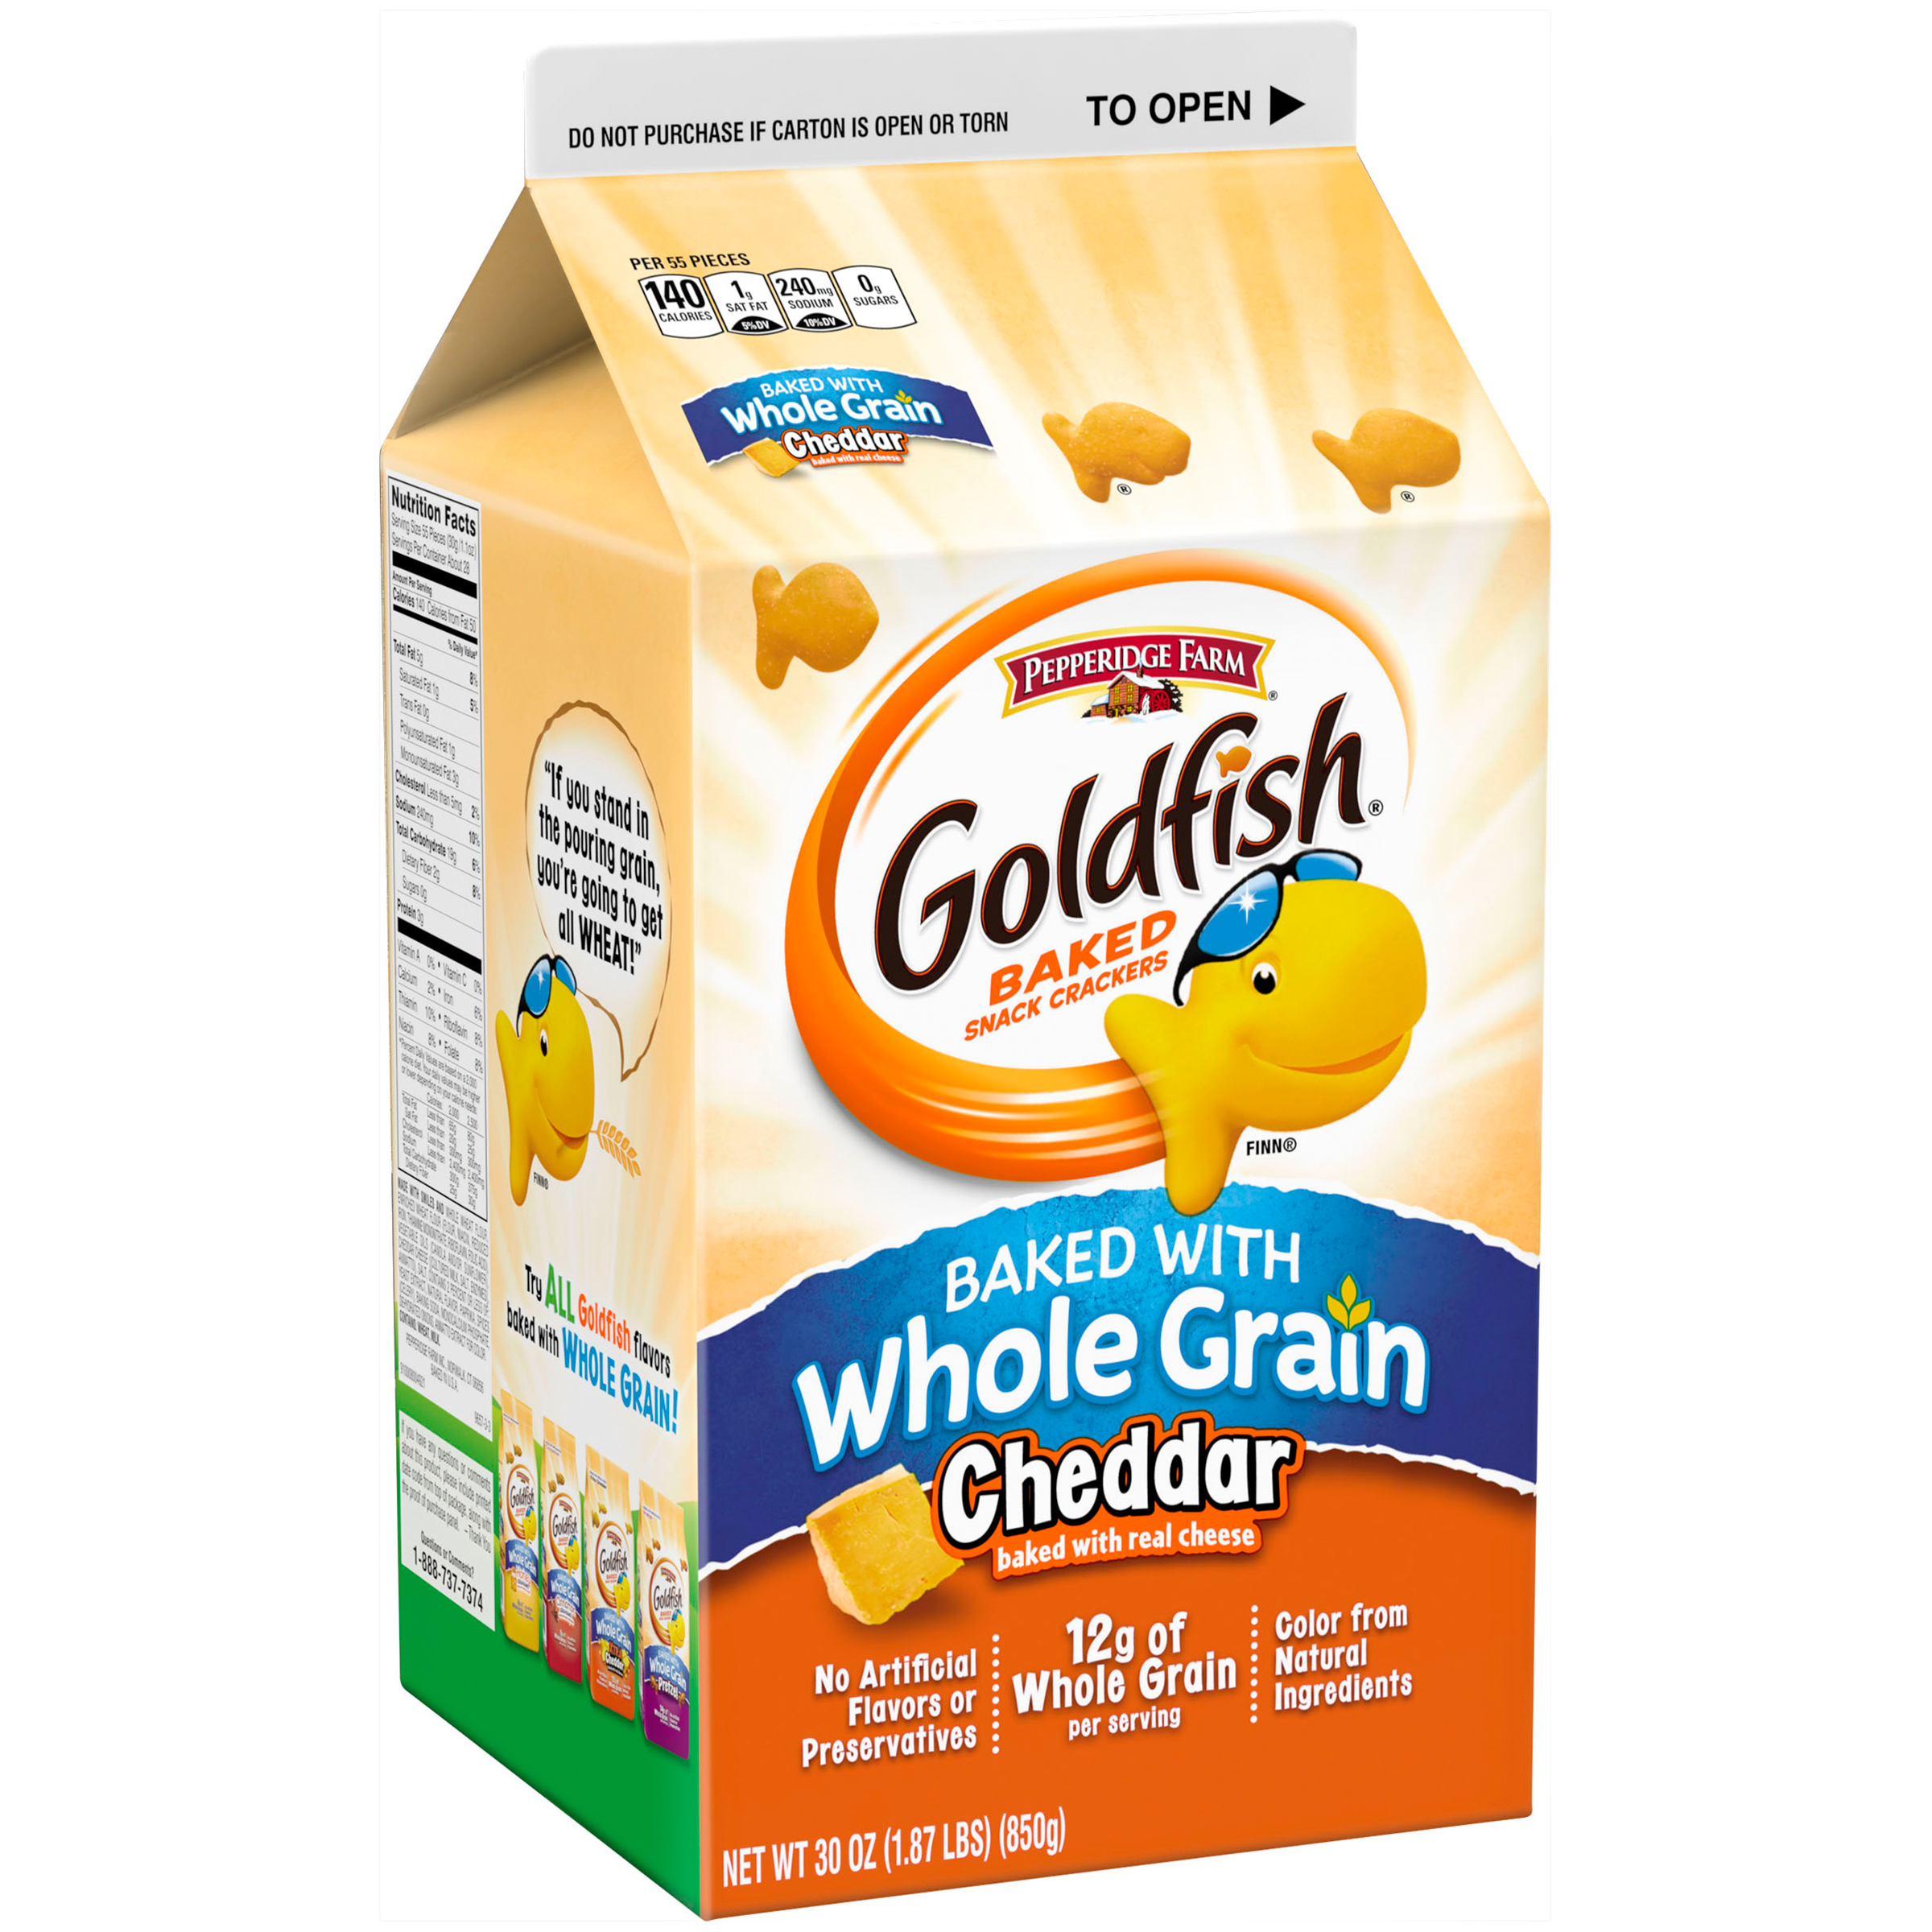 Pepperidge Farm® Goldfish® Whole Grain Cheddar Baked Snack Crackers 30 oz. Box